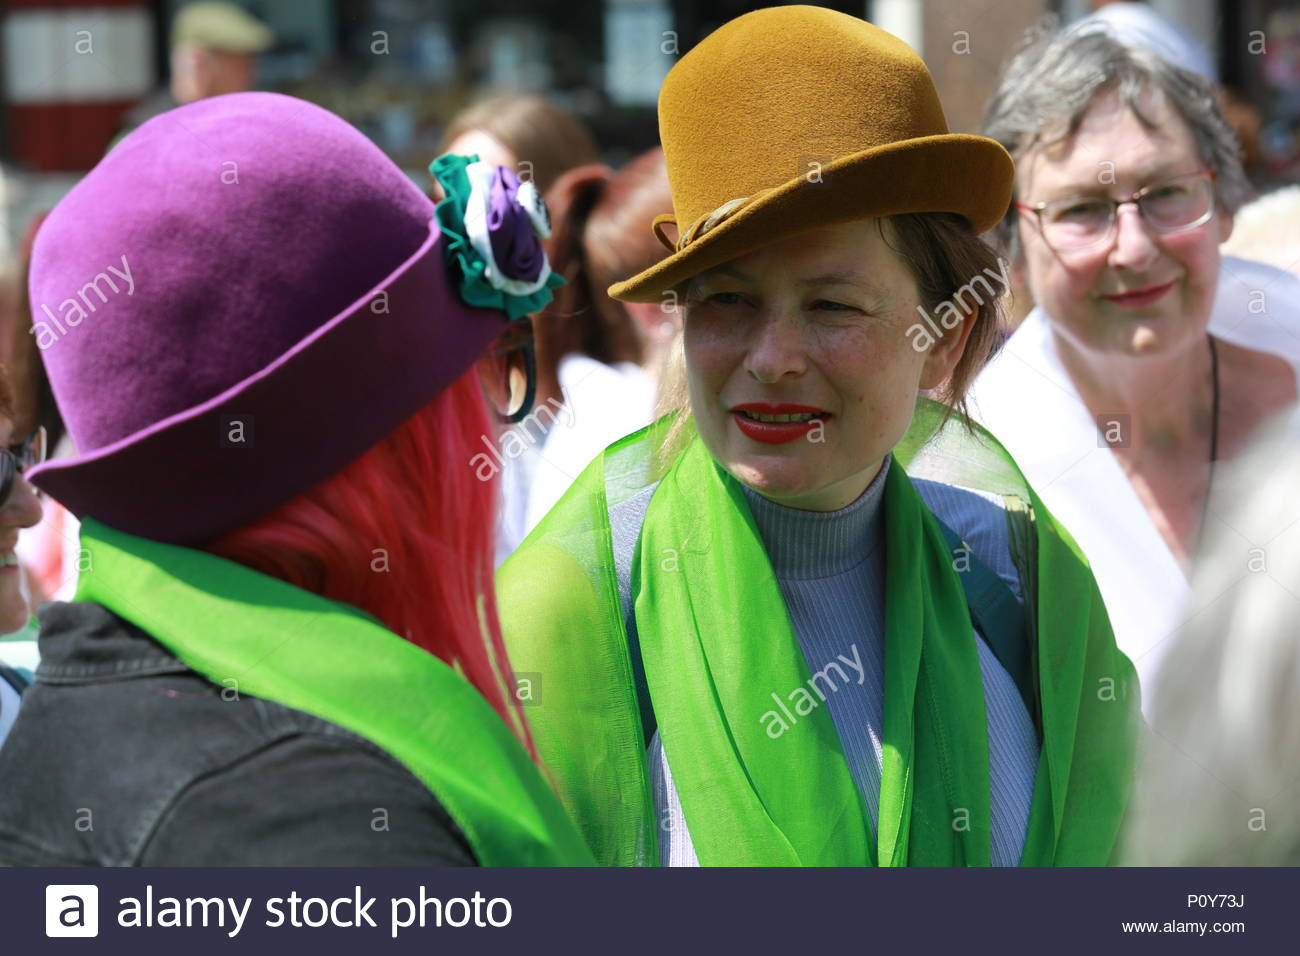 London, UK. 10th June 2018. Glorious weather in London as a march to Westminster took place in honour of the Suffragette movement. A large march wound its way towards Westminster with thousands of jubilant women celebrating 100 years of votes for women. Stock Photo